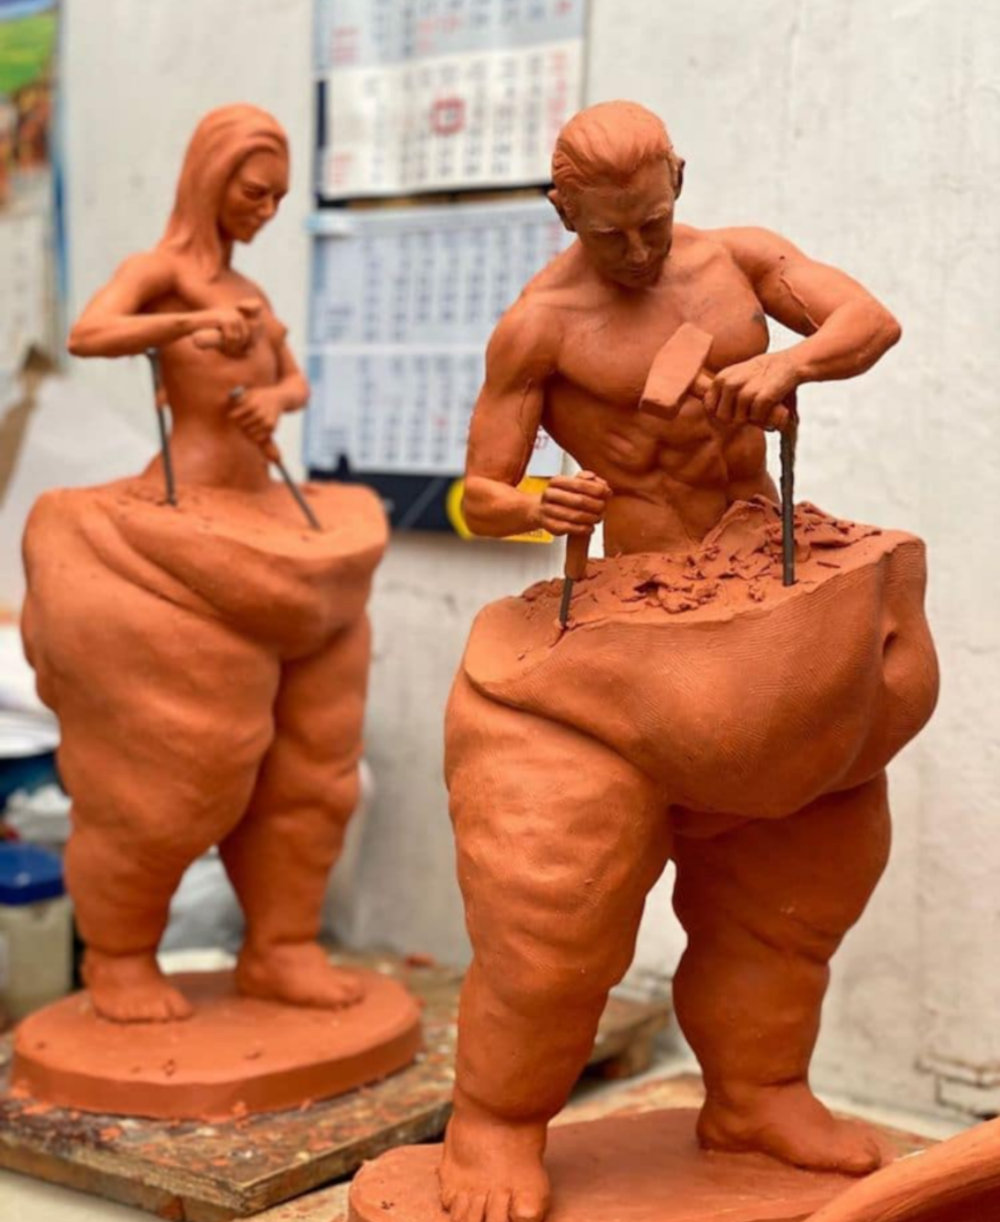 """This things are now in my """"Interesting"""" folder on the phone in 2021   Mexican artists, Sculptures, Figurative sculpture"""